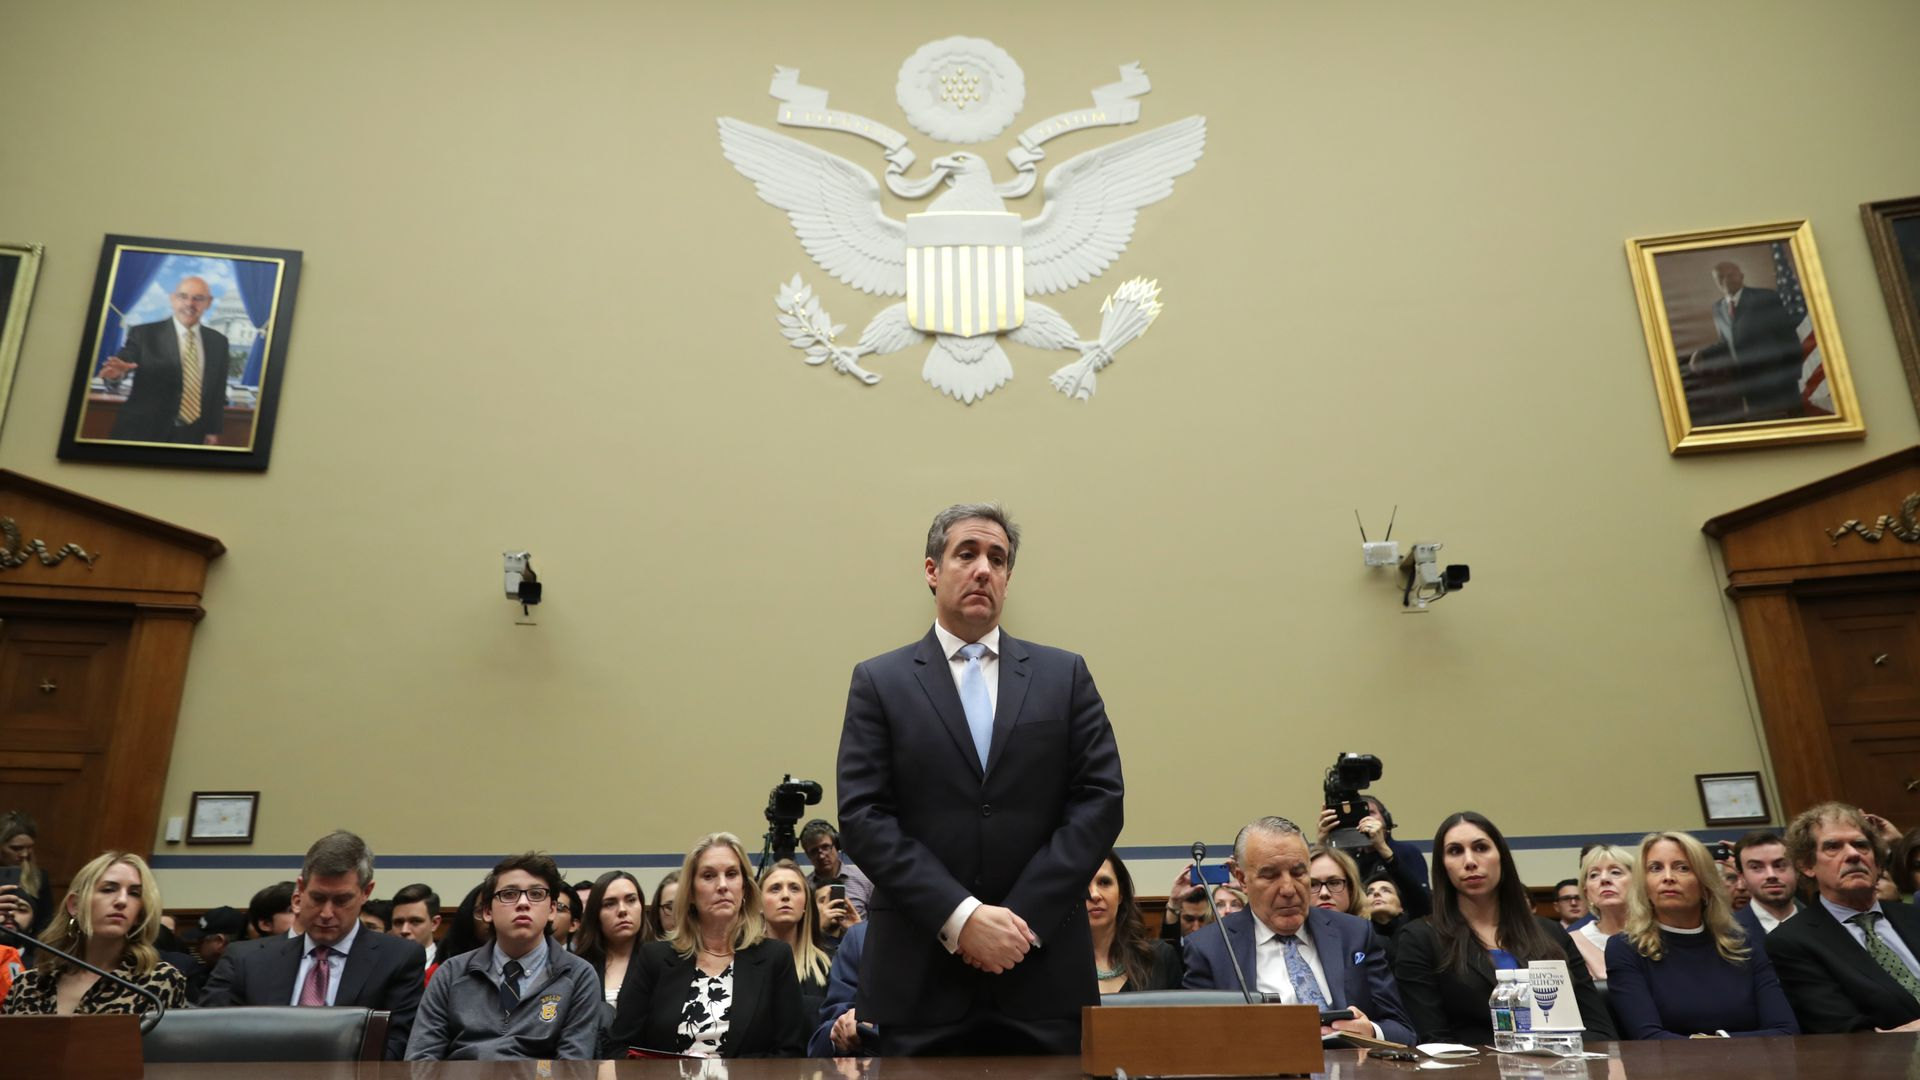 In this image, Michael Cohen stands with his hands folded in court and looks down.